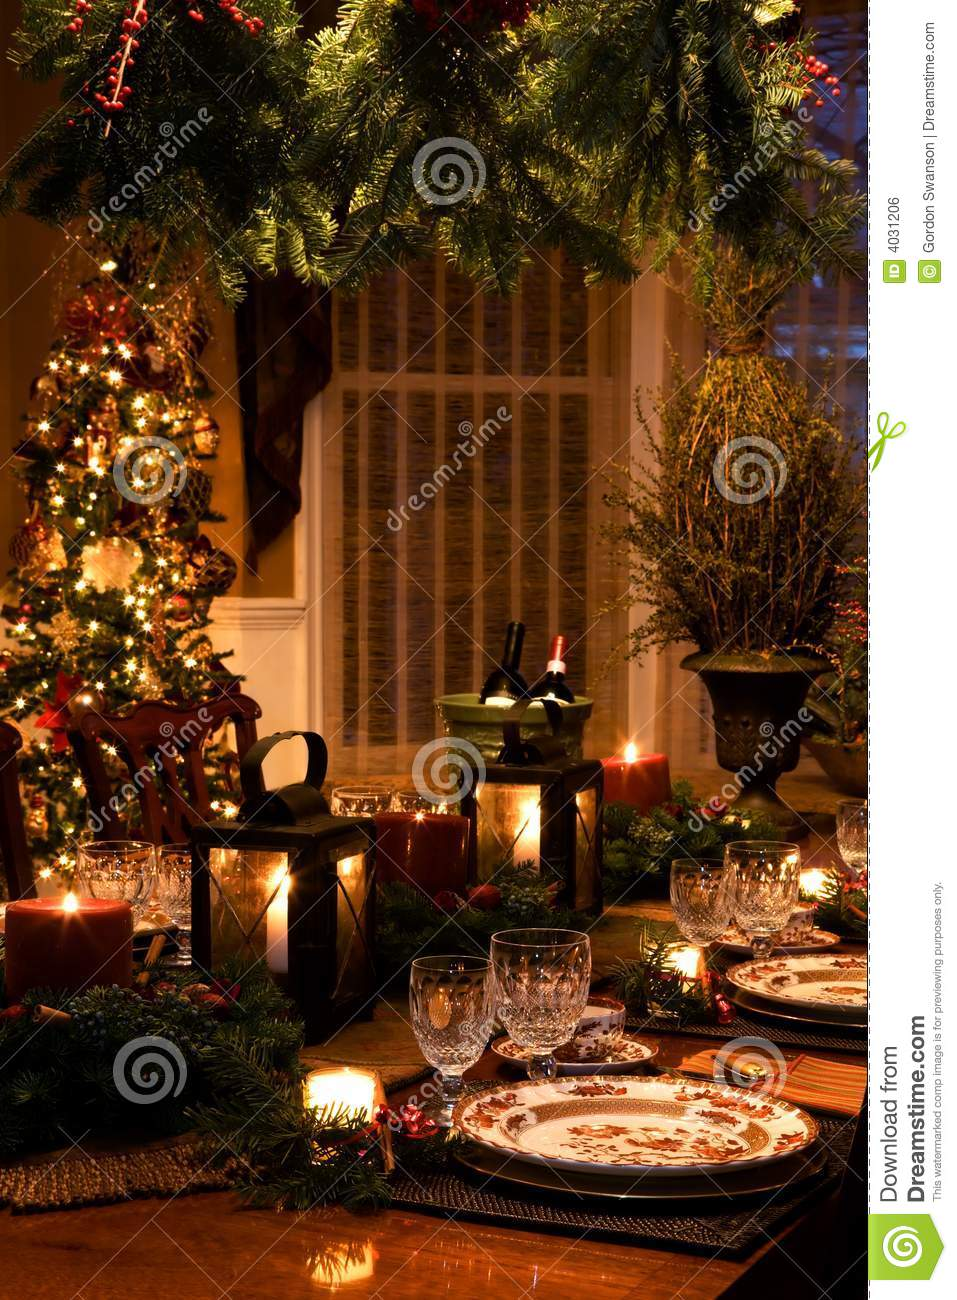 christmas interiors royalty free stock image image 4031206